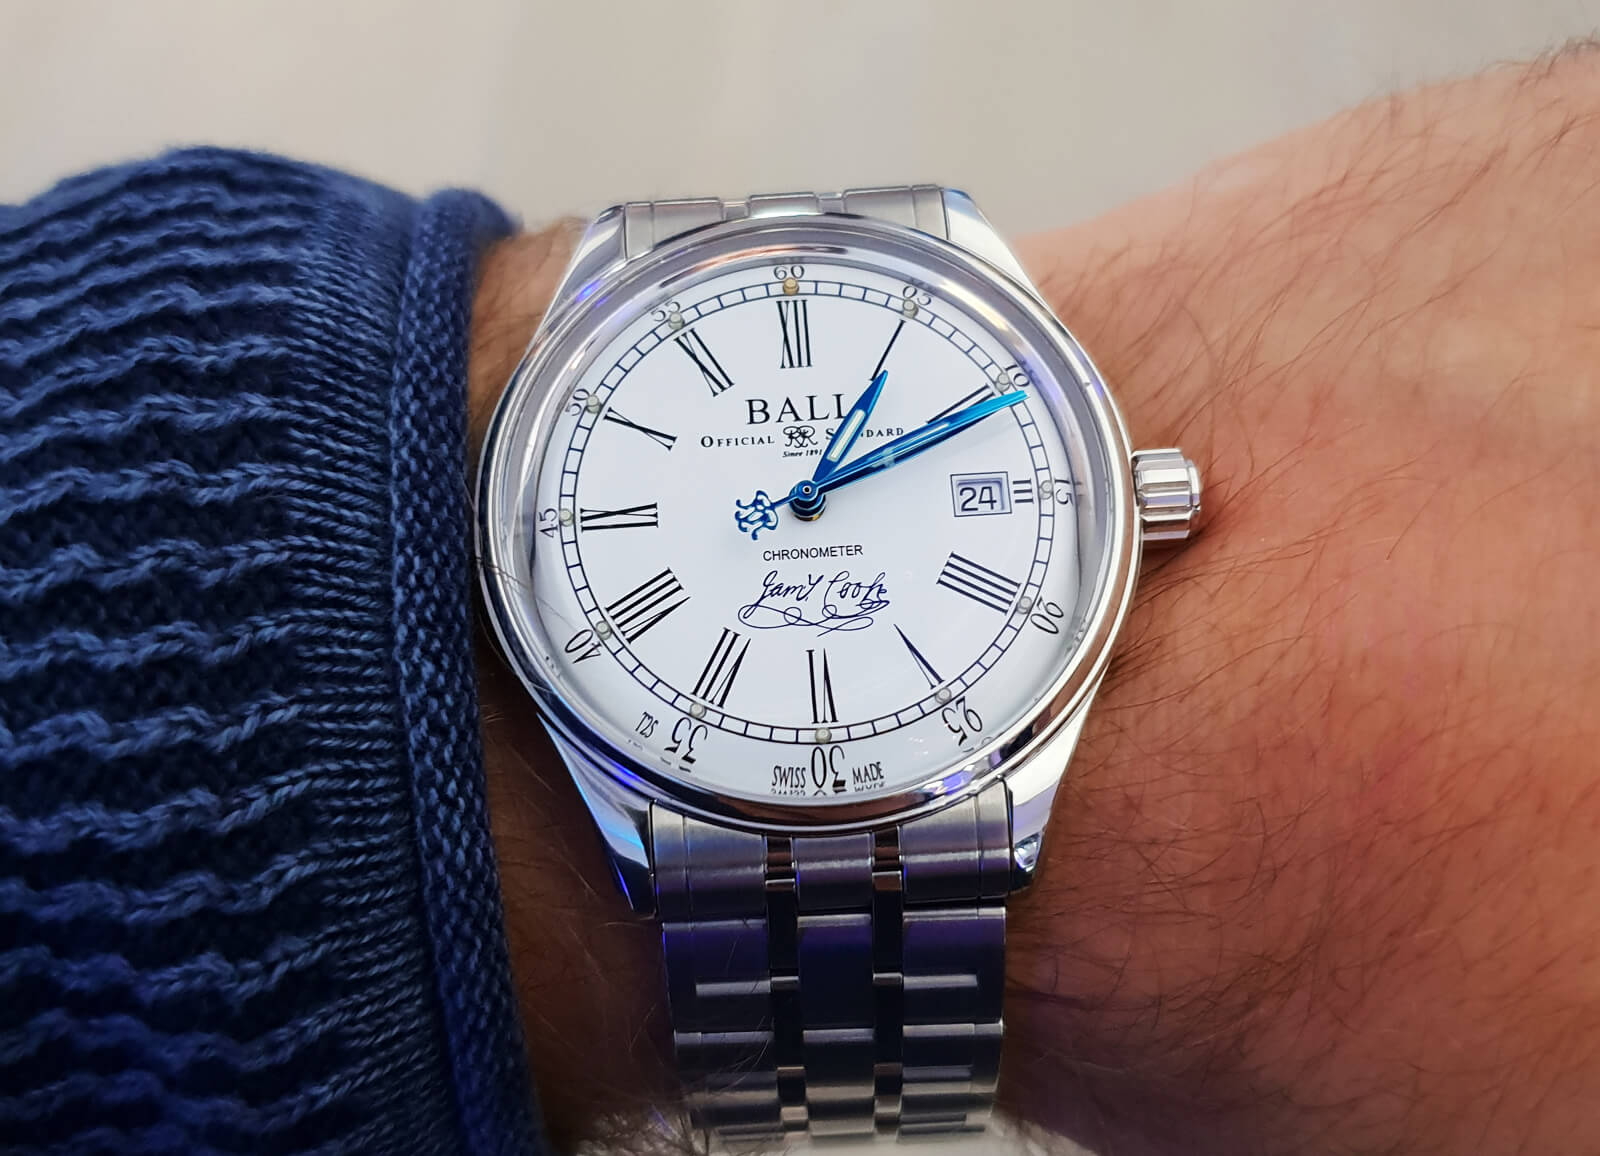 Ball Trainmaster Endeavour Chronometer Watch